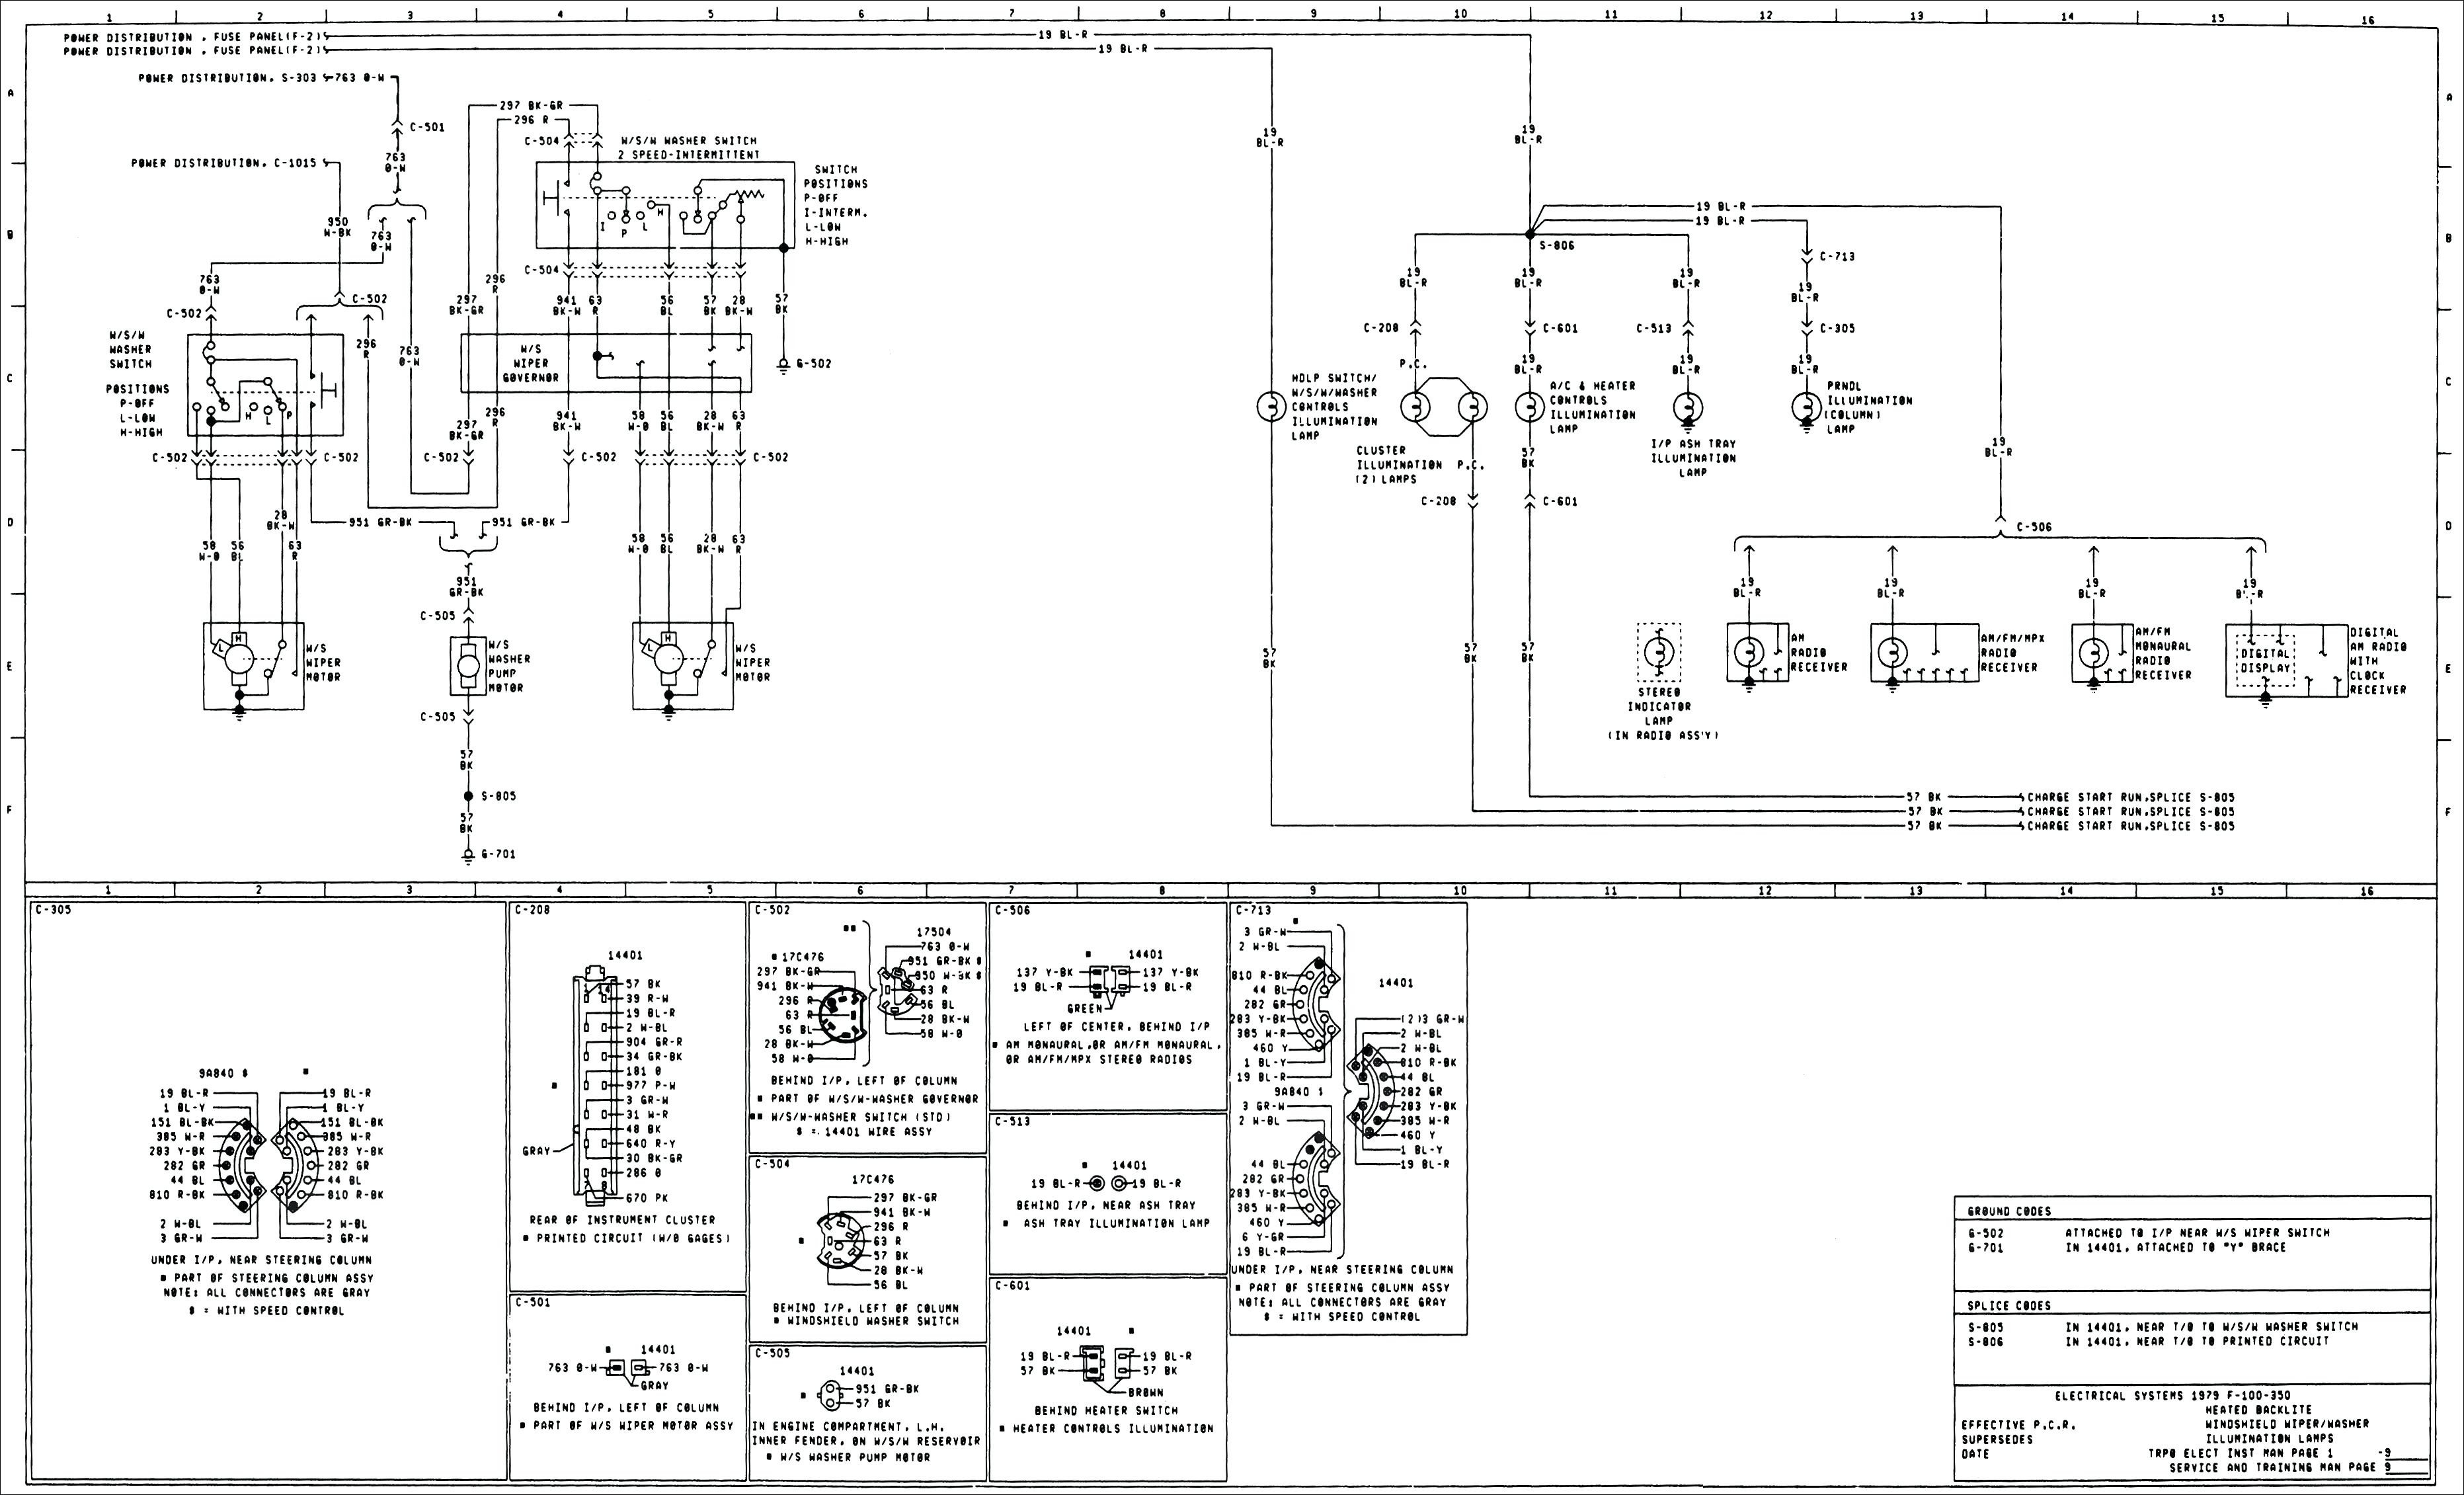 Mack Truck Fuel System Diagram Engine Wiring Diagram Mack Truck Free Download Kohler Cv15s Diagrams Of Mack Truck Fuel System Diagram